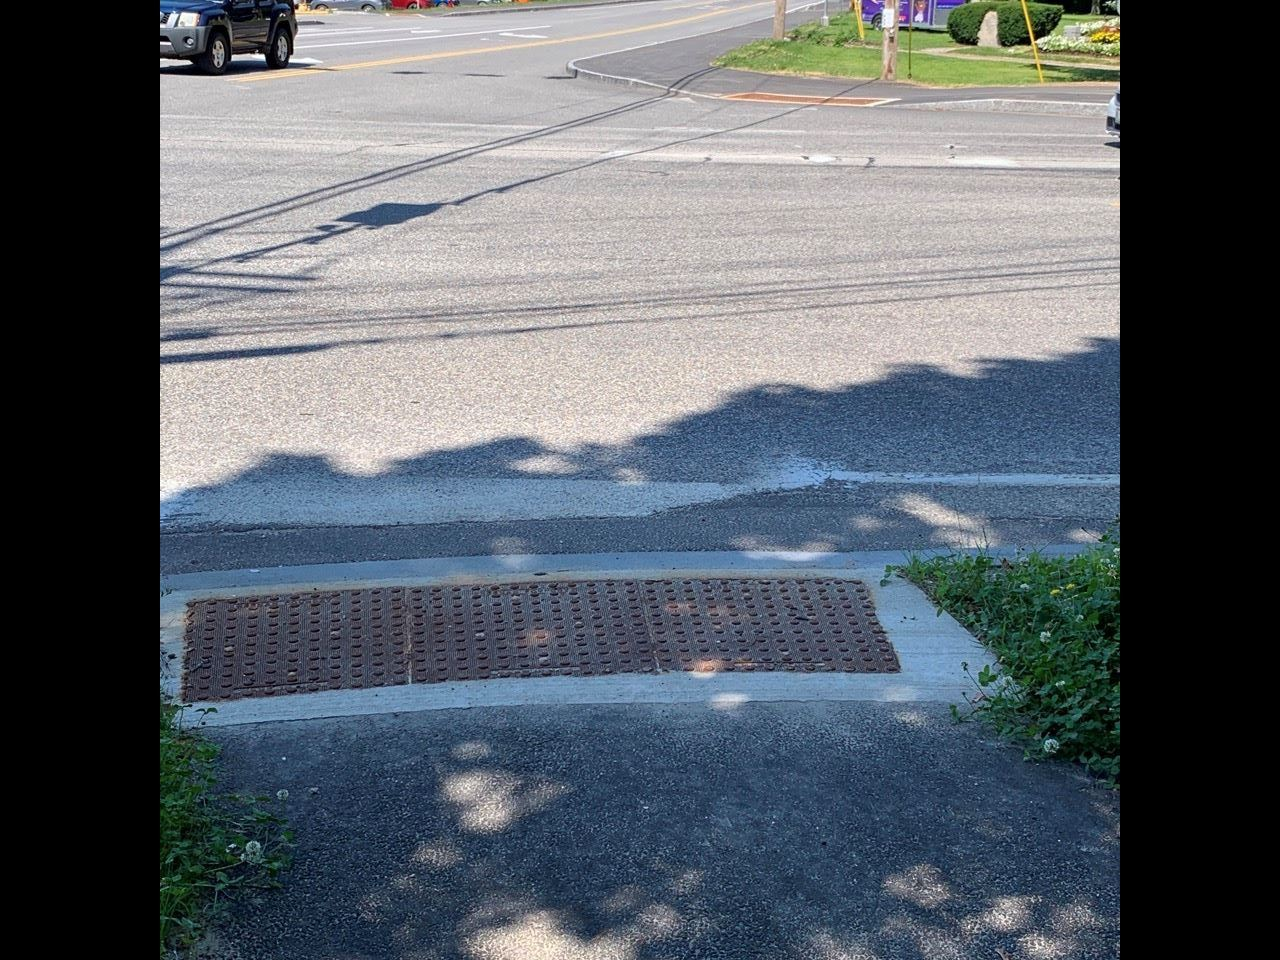 Curb ramp with detectable warning plates at East Ave/Pleasant St/Bartlett St